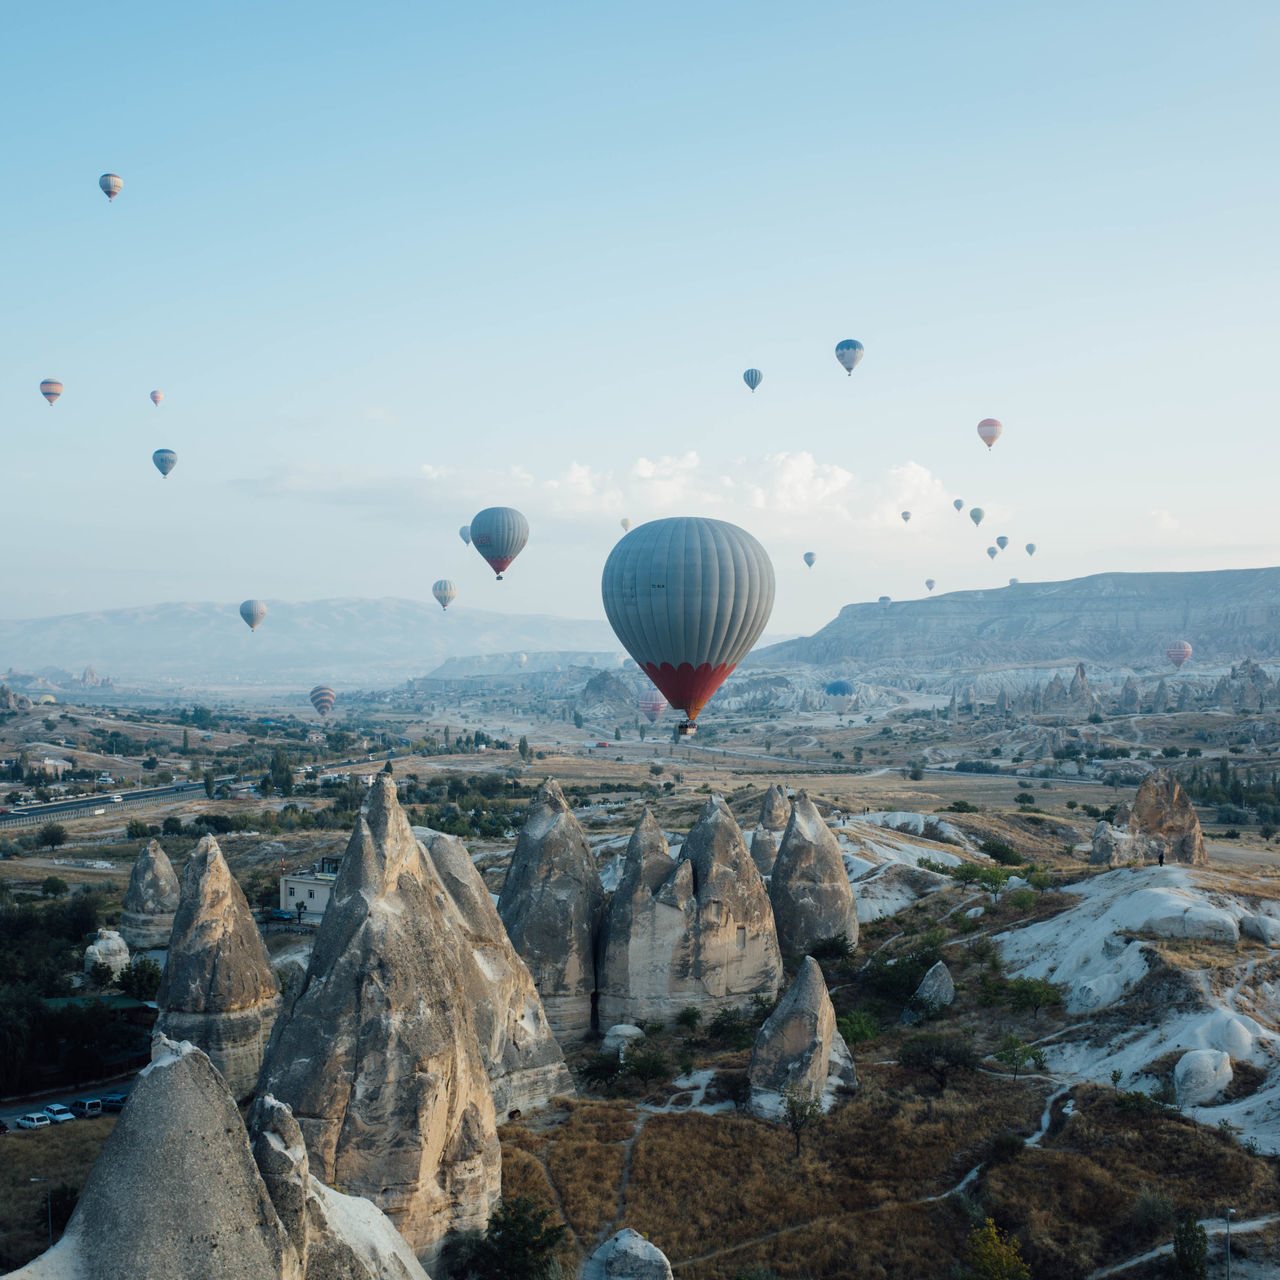 Beautiful stock photos of turkey, hot air balloon, mid-air, flying, transportation